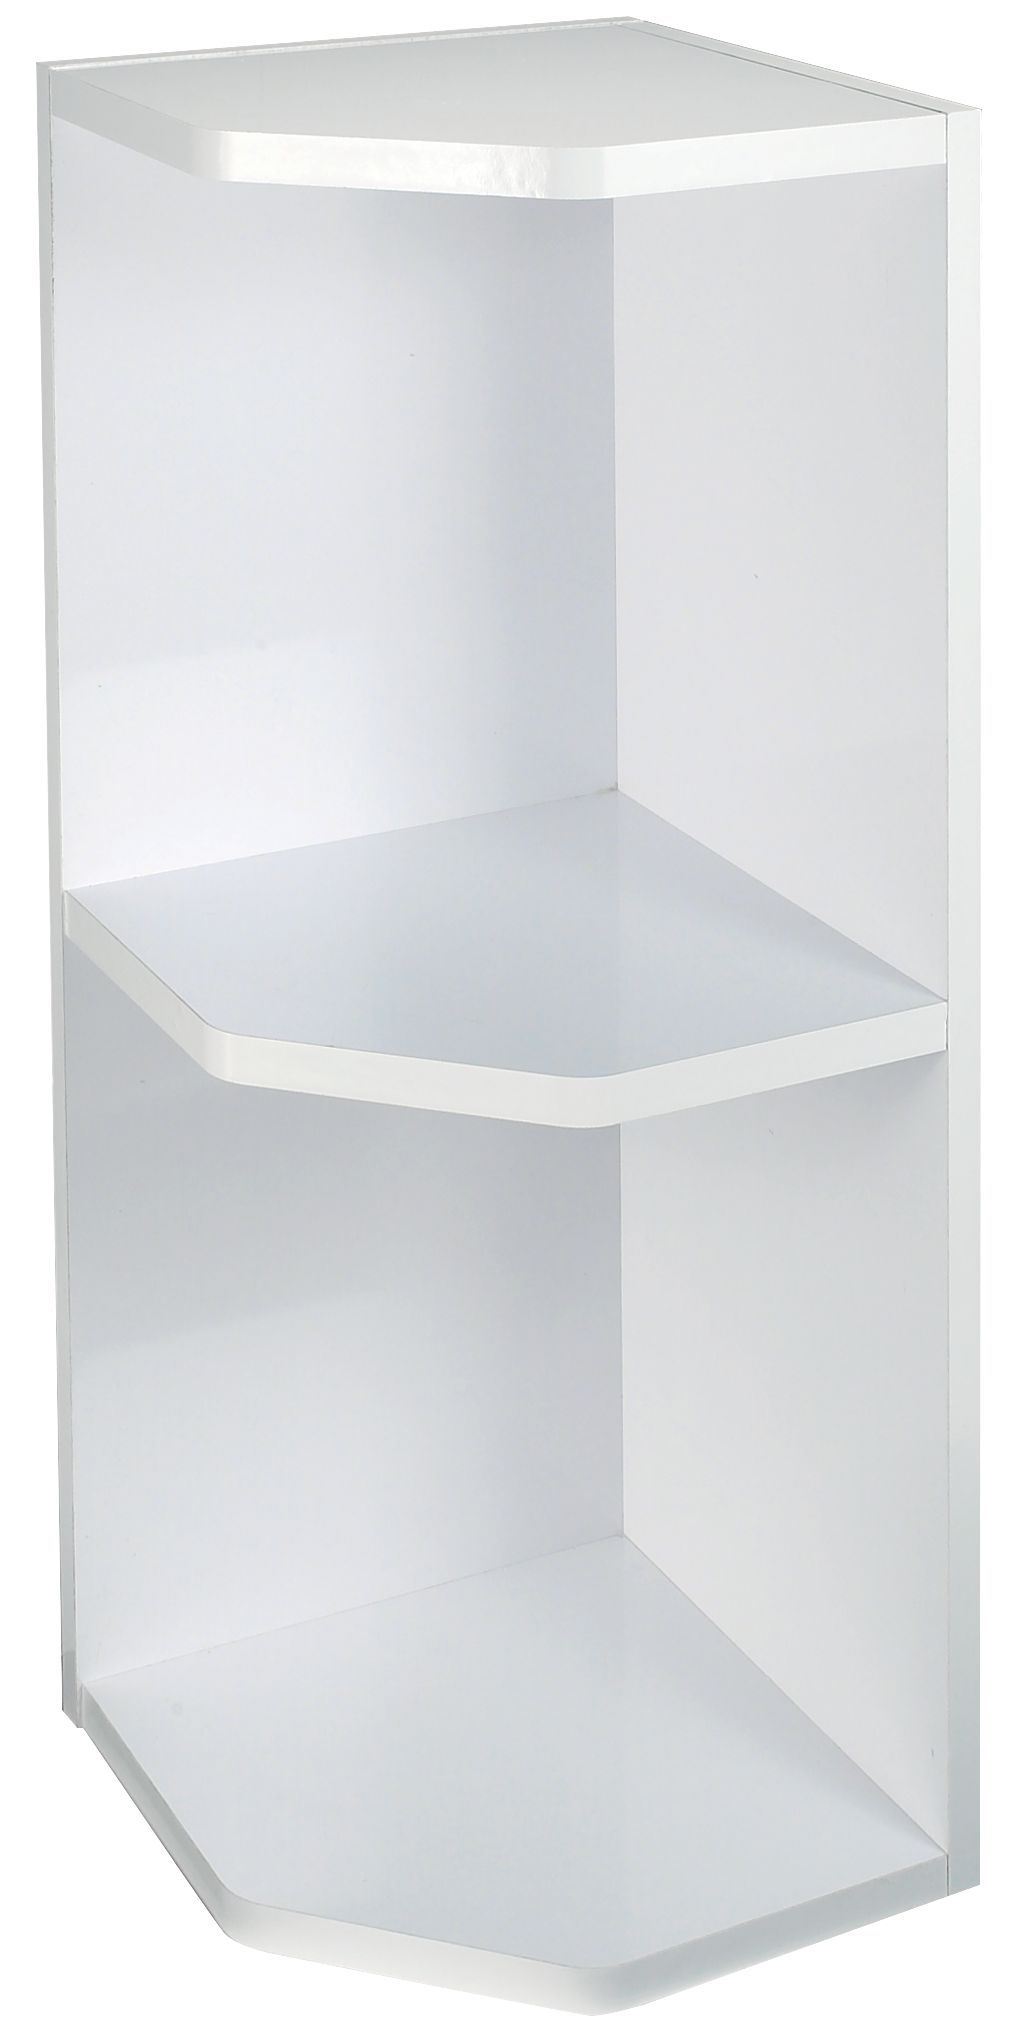 It Kitchens White Open Wall Cabinet W 300mm Departments Diy At B Q